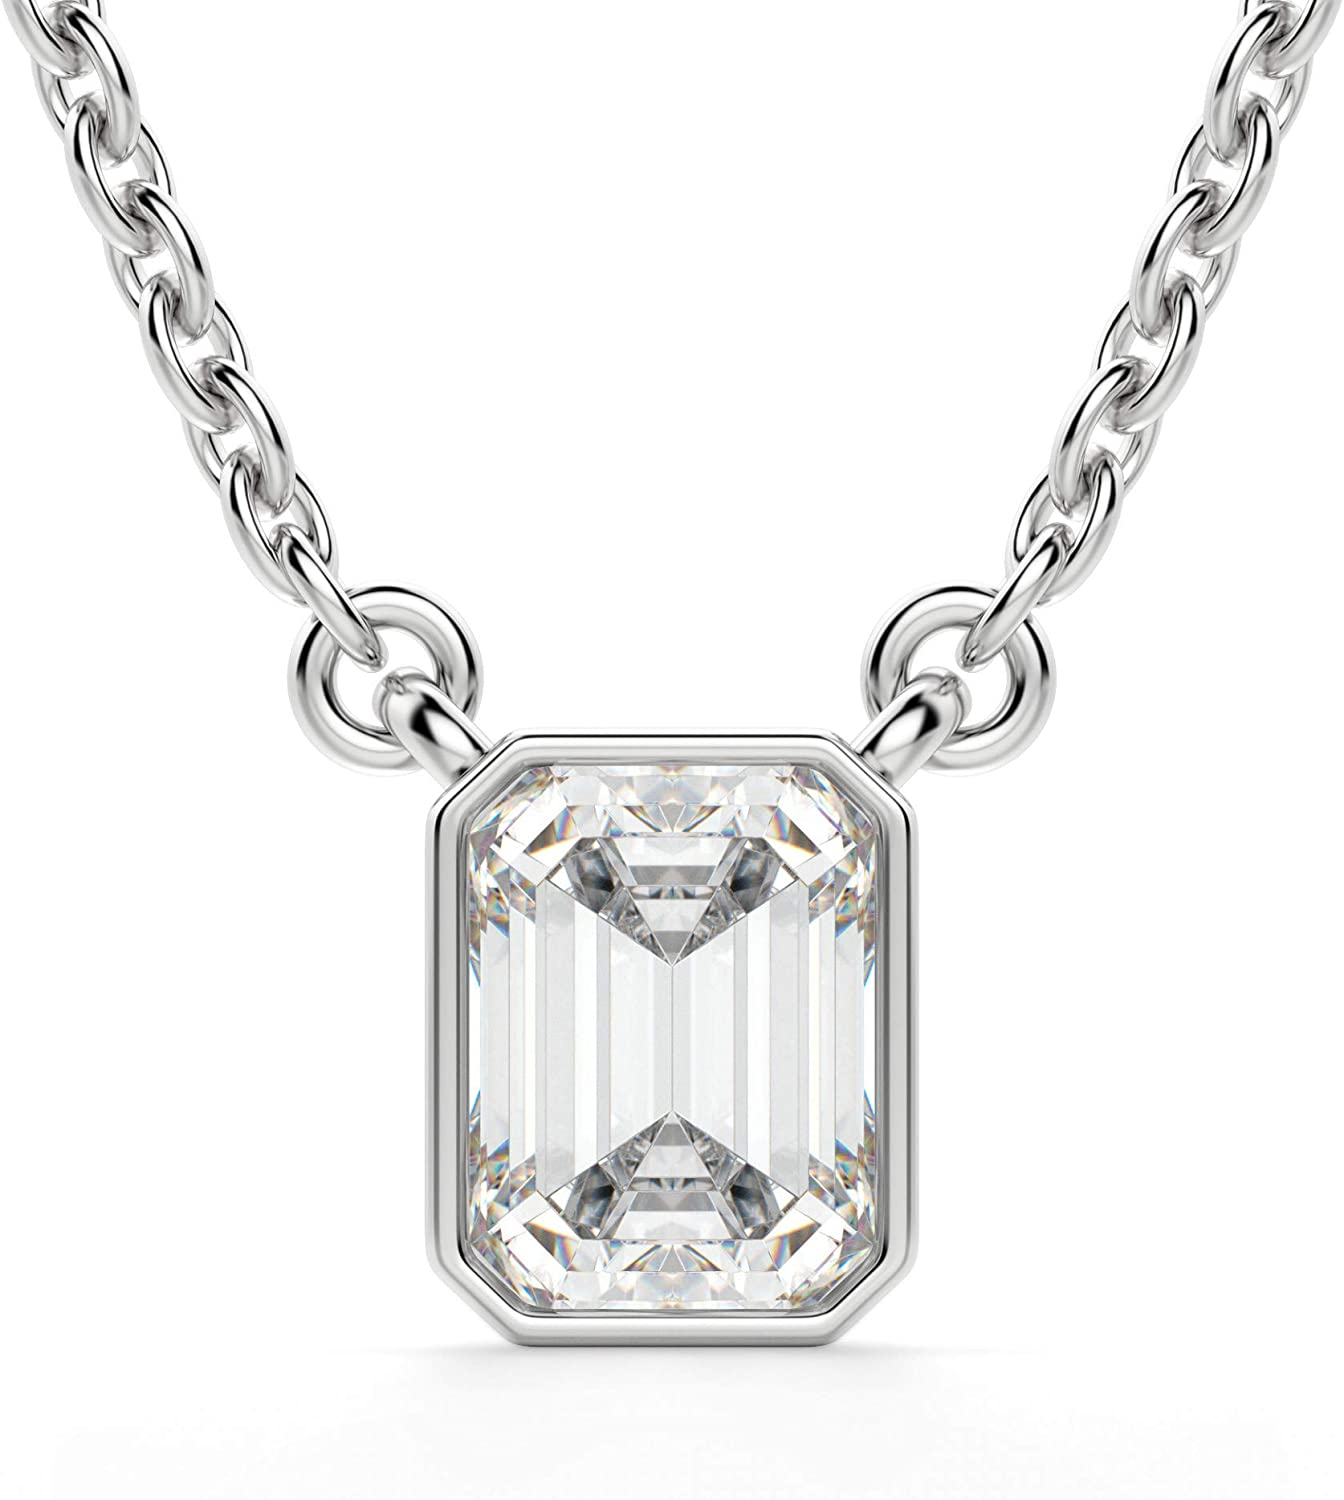 Dainty Bridal Pendant Necklace Rose Gold Moissanite Necklace Moissanite Pendant Necklace Diamond Silver Necklace Gift for Wife